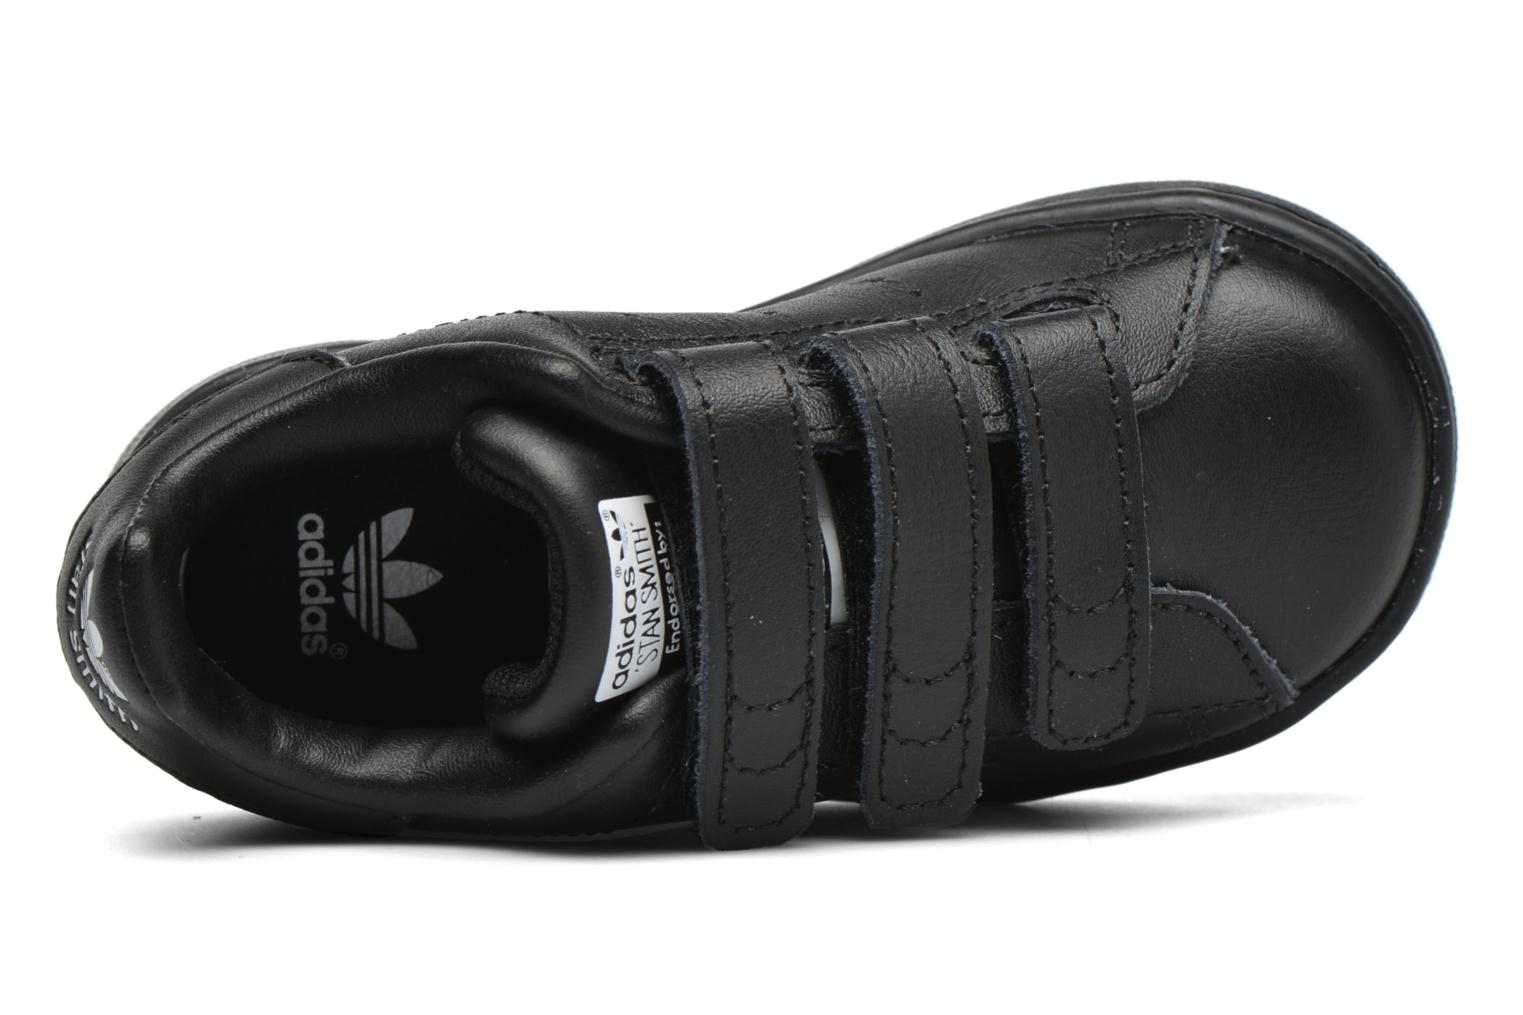 Stan smith cf I NOIR/NOIR/FTWBLA